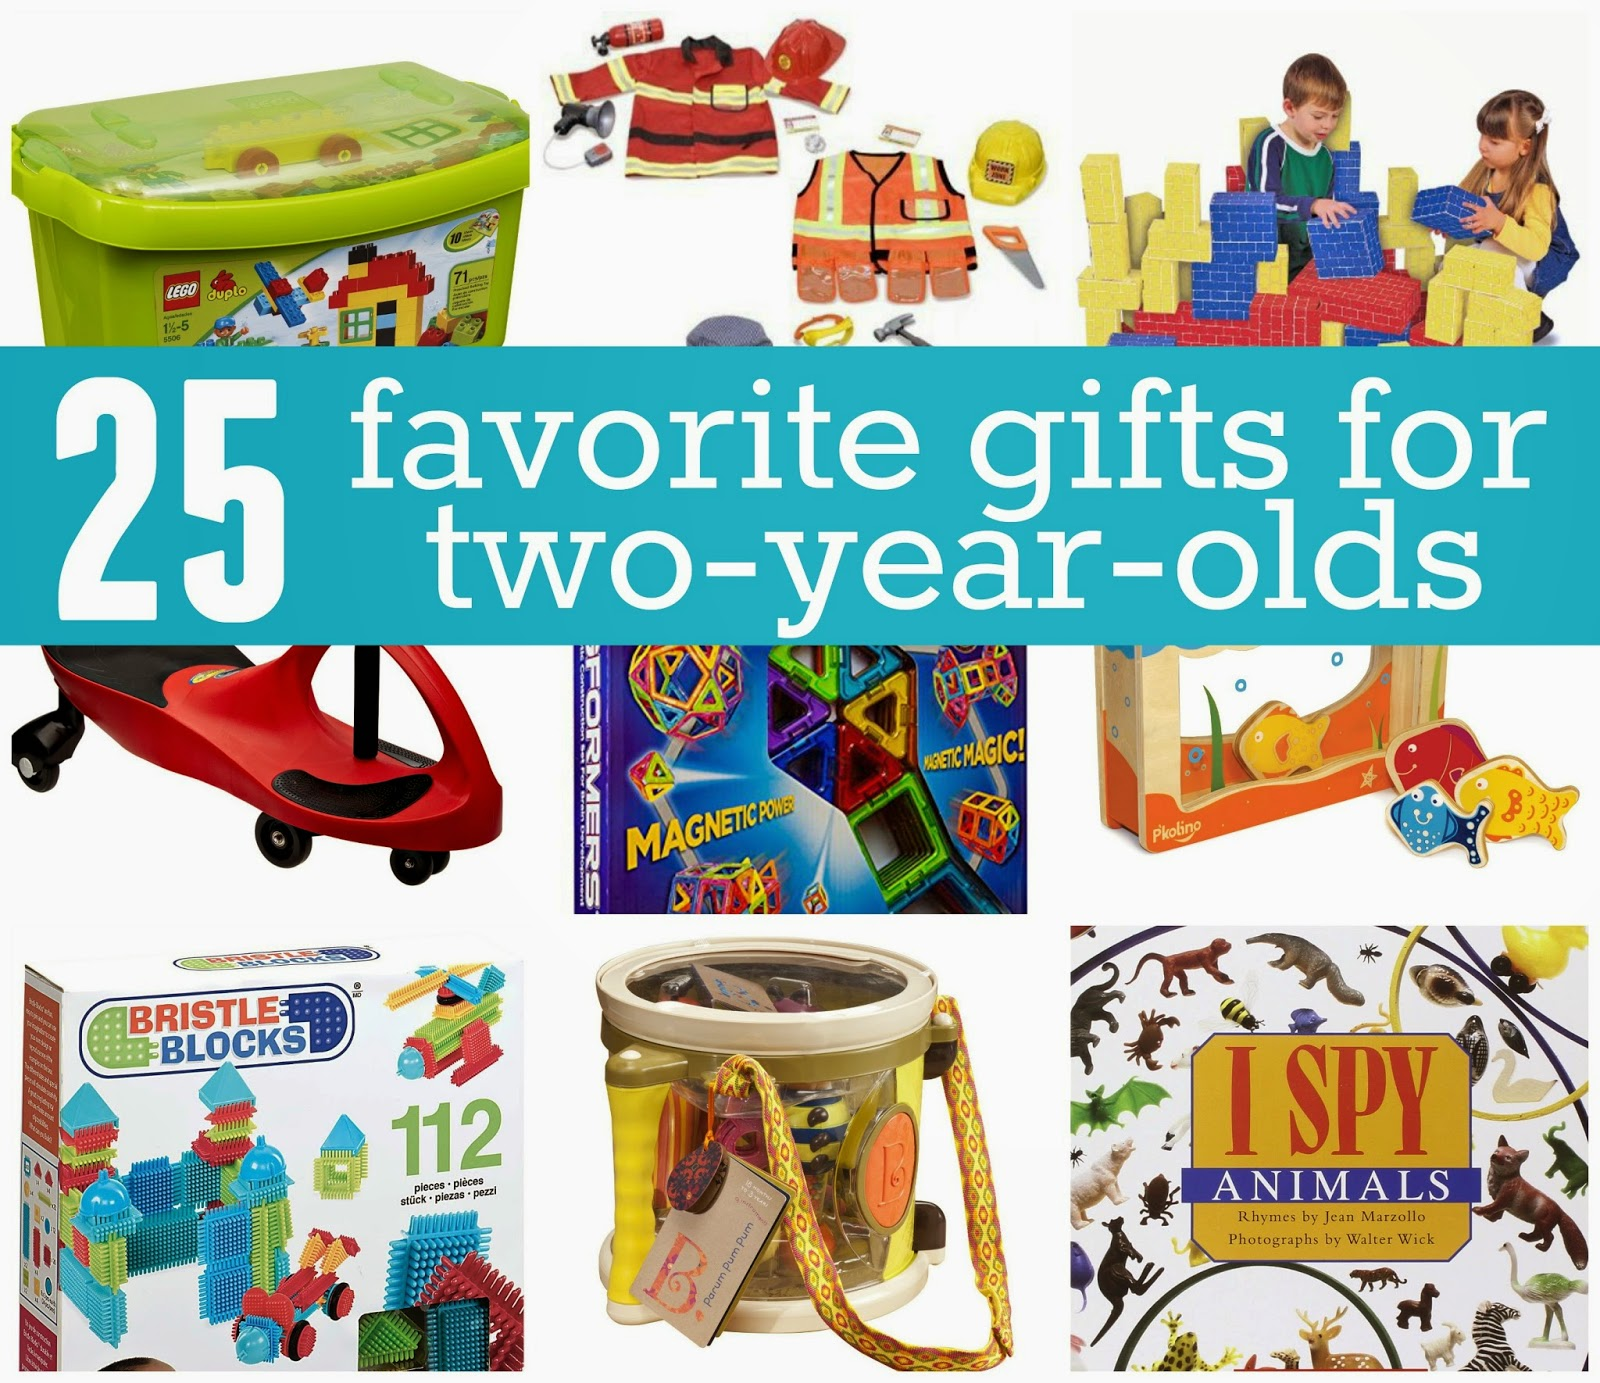 Toys For 2 Year Olds For Girls : Toddler approved favorite gifts for year olds